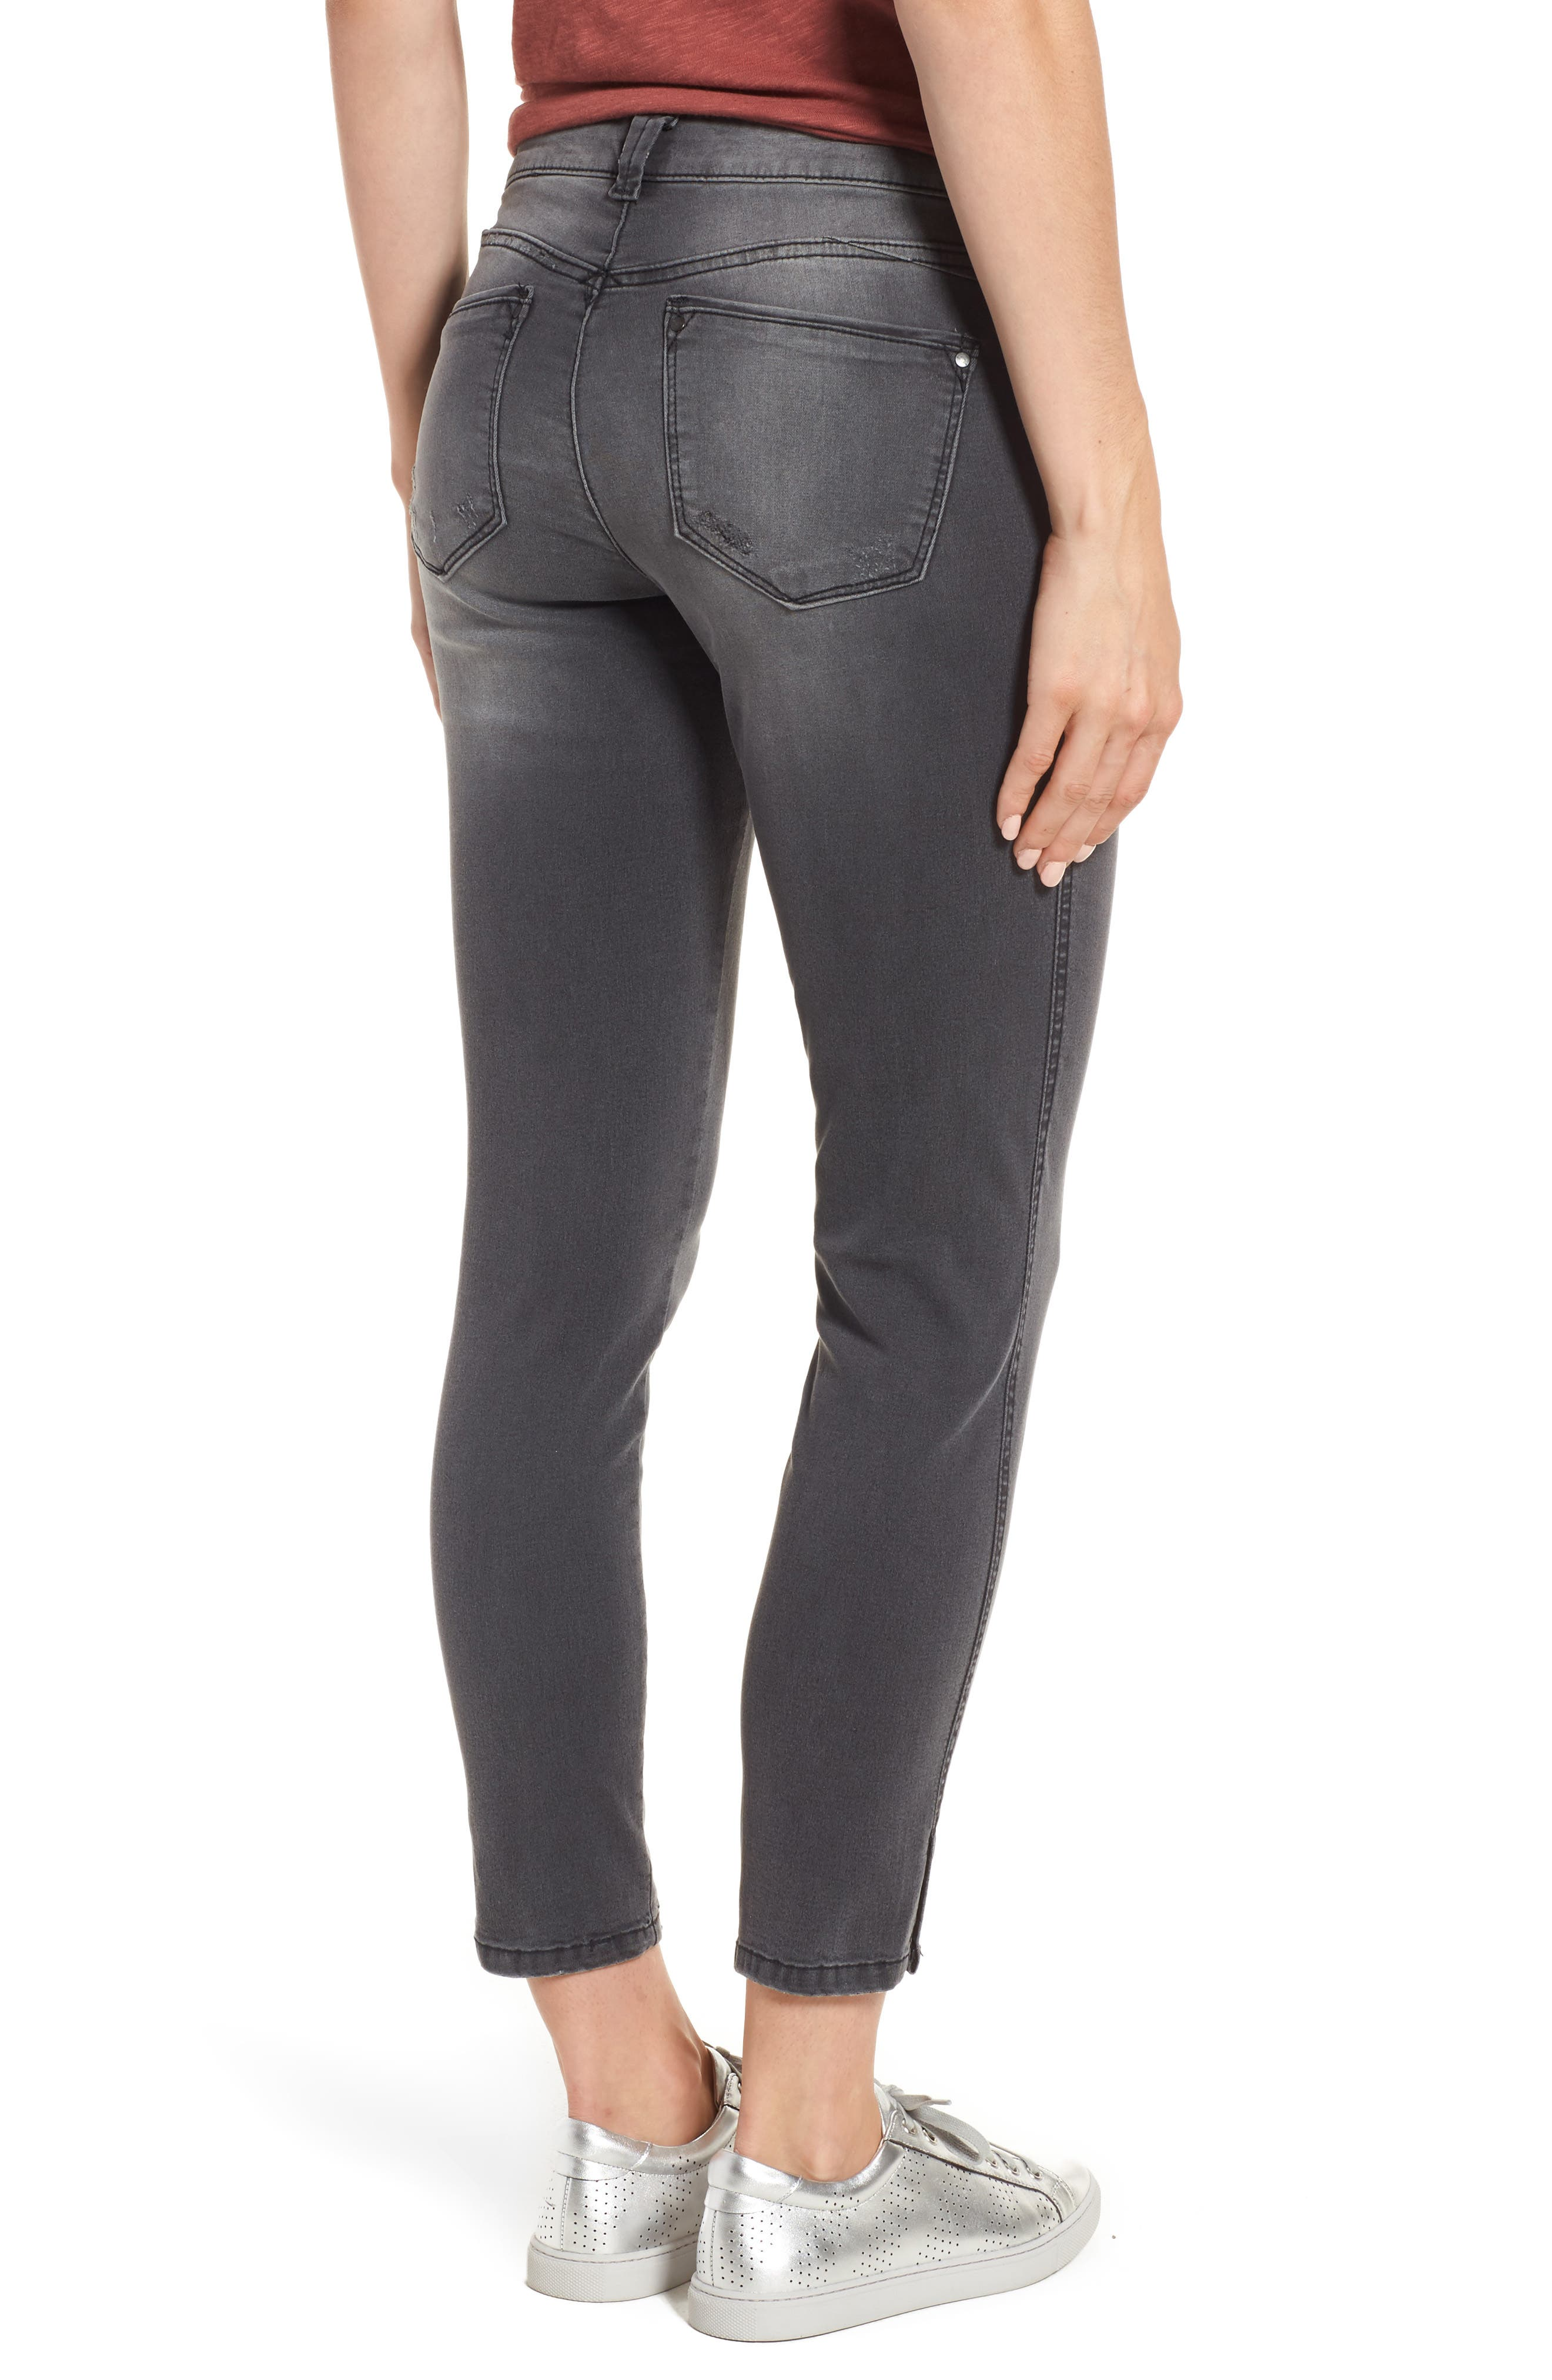 Slit Skinny Ankle Jeans,                             Alternate thumbnail 2, color,                             Grey